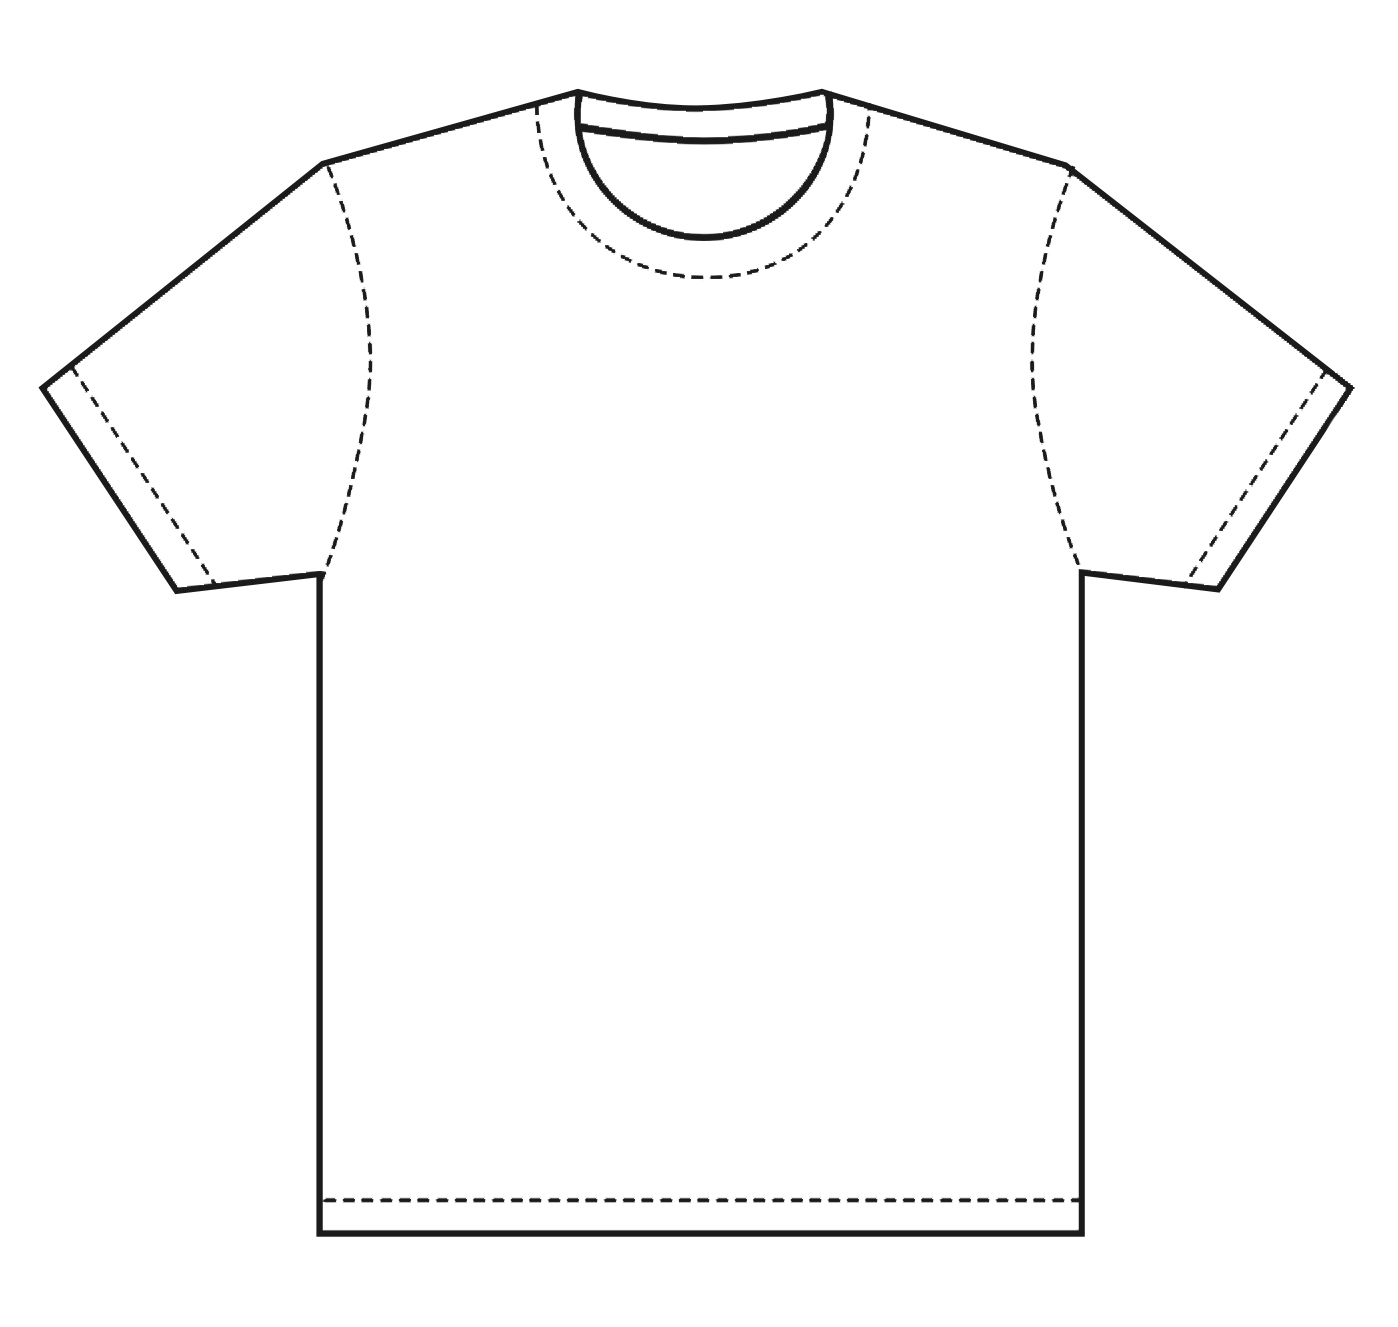 16 V T- Shirts Designs Templates Images